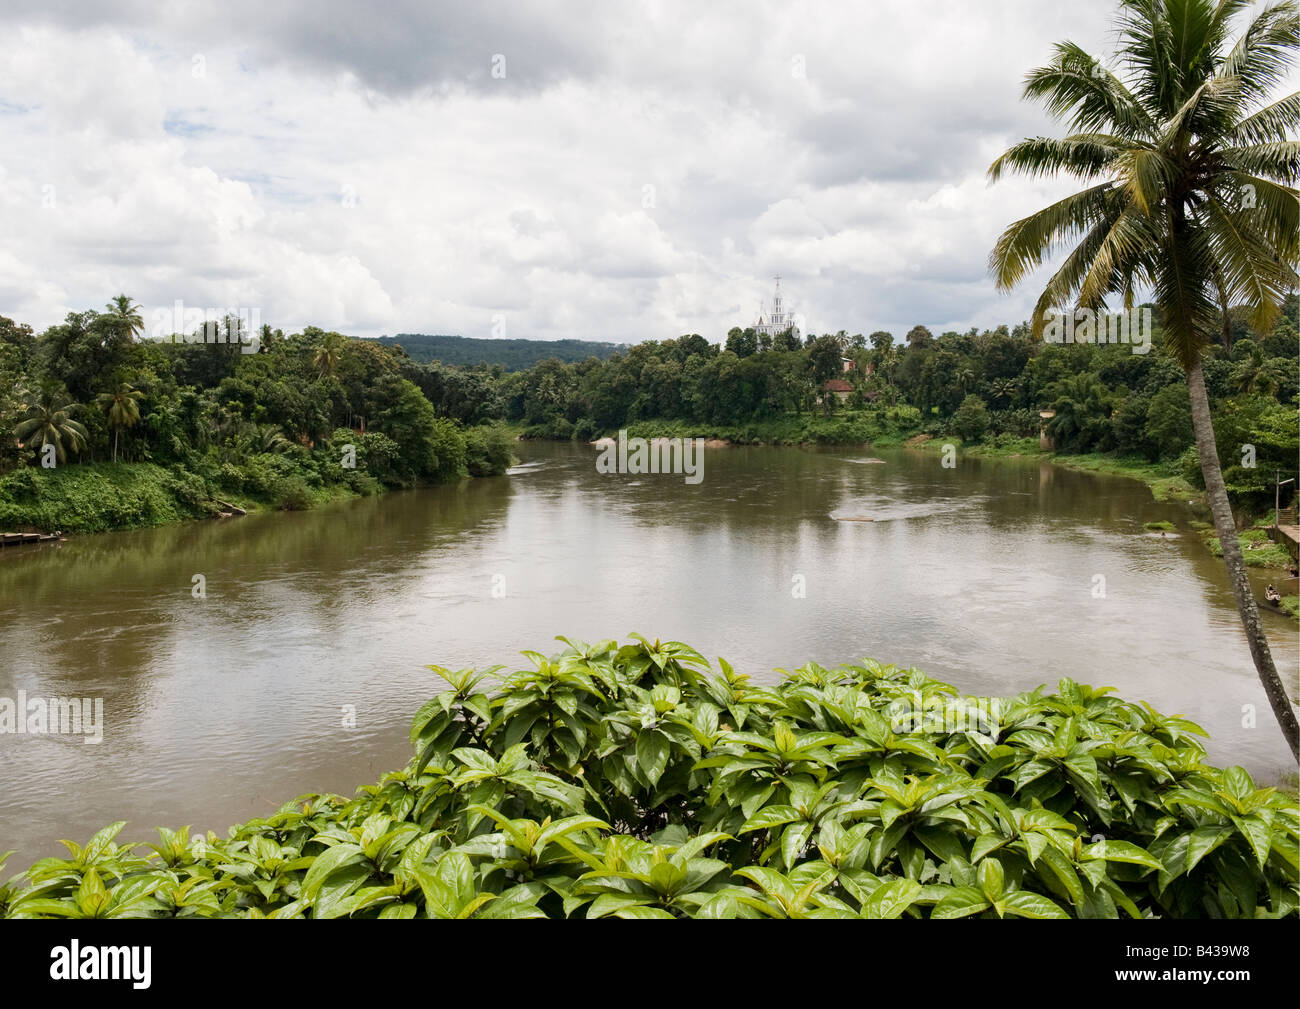 Periyar river flowing through lush green village farms with a momentous church in the background in this picturesque Stock Photo